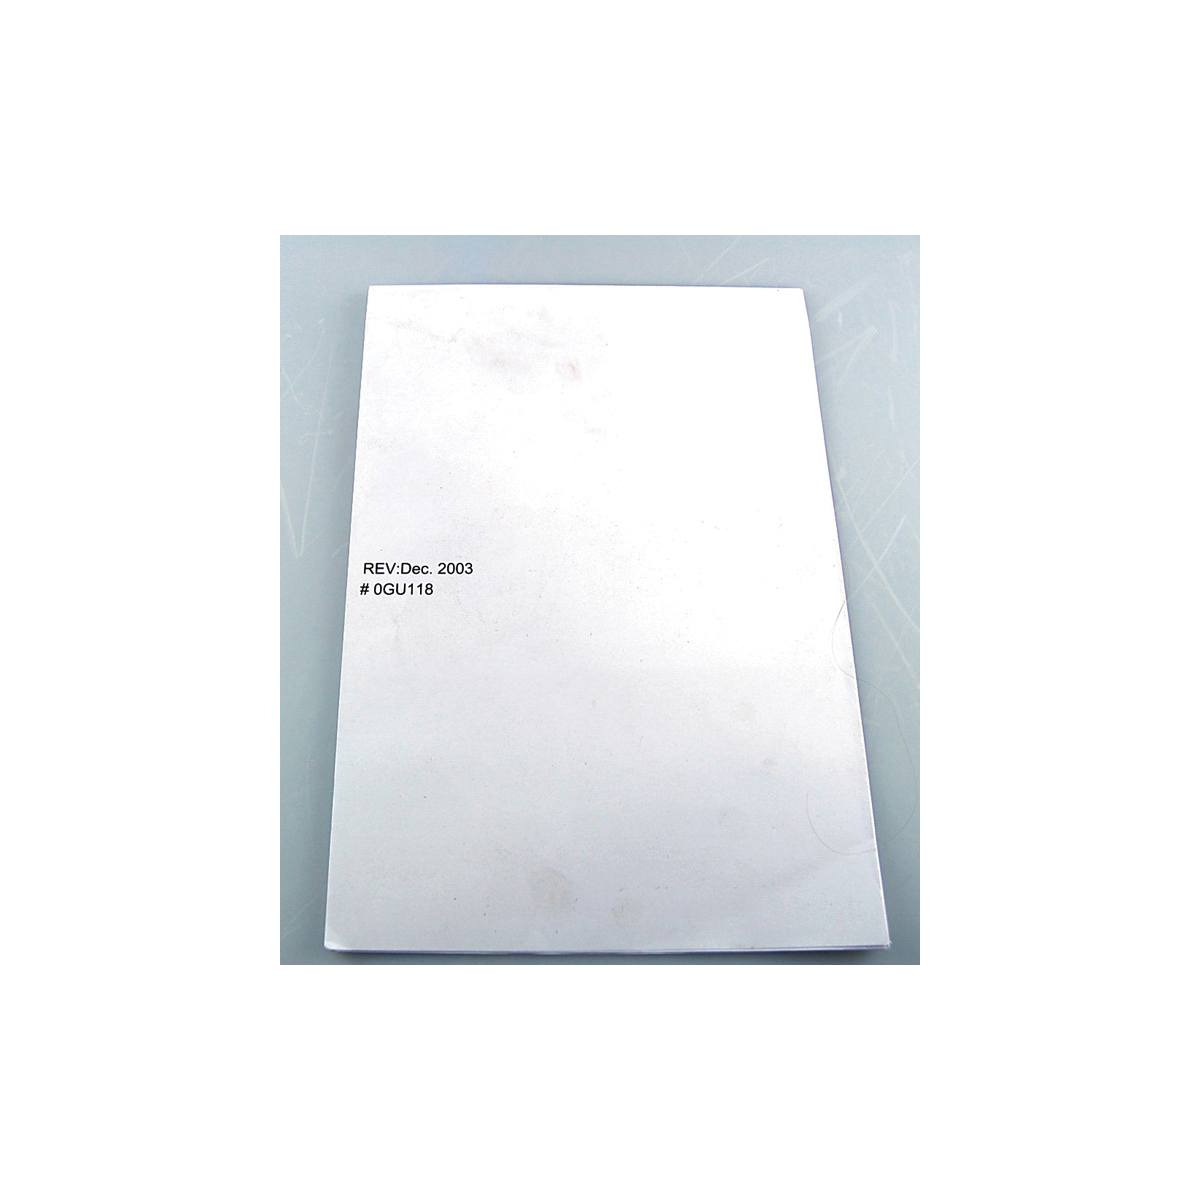 Toto® 0GU118 Template, For Use With Rendezvous® LT569, LT579G, LT579 Under Counter Lavatory